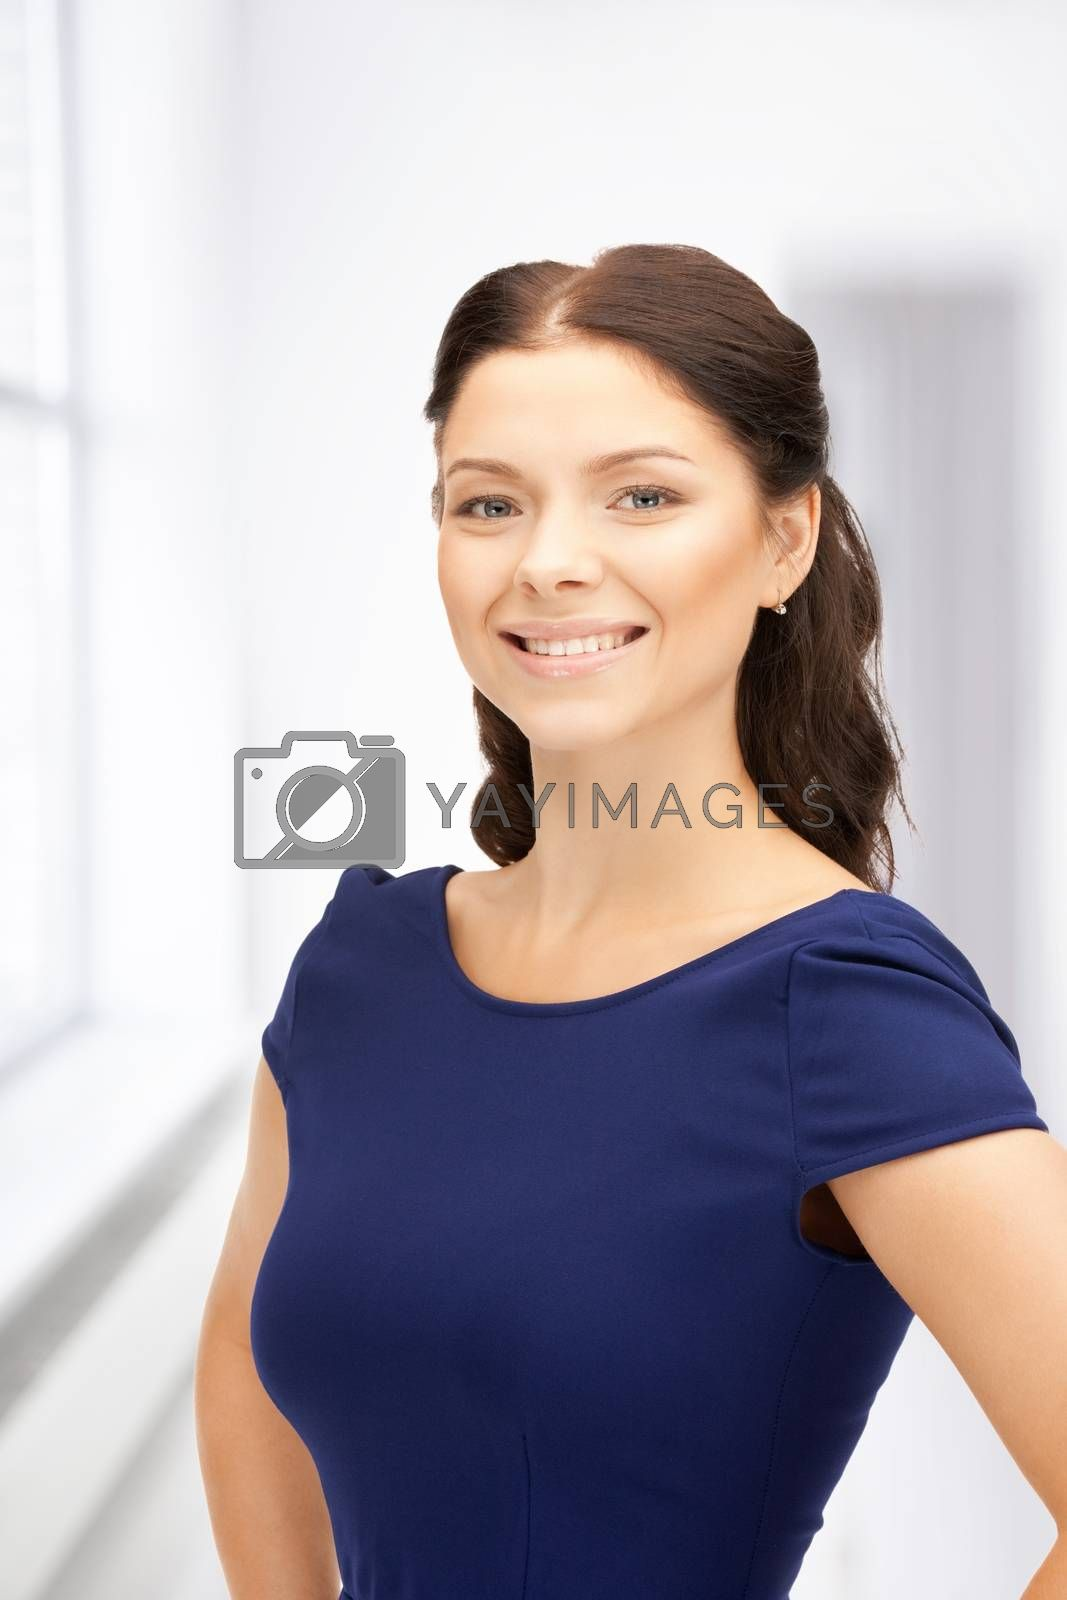 happy and smiling woman by dolgachov